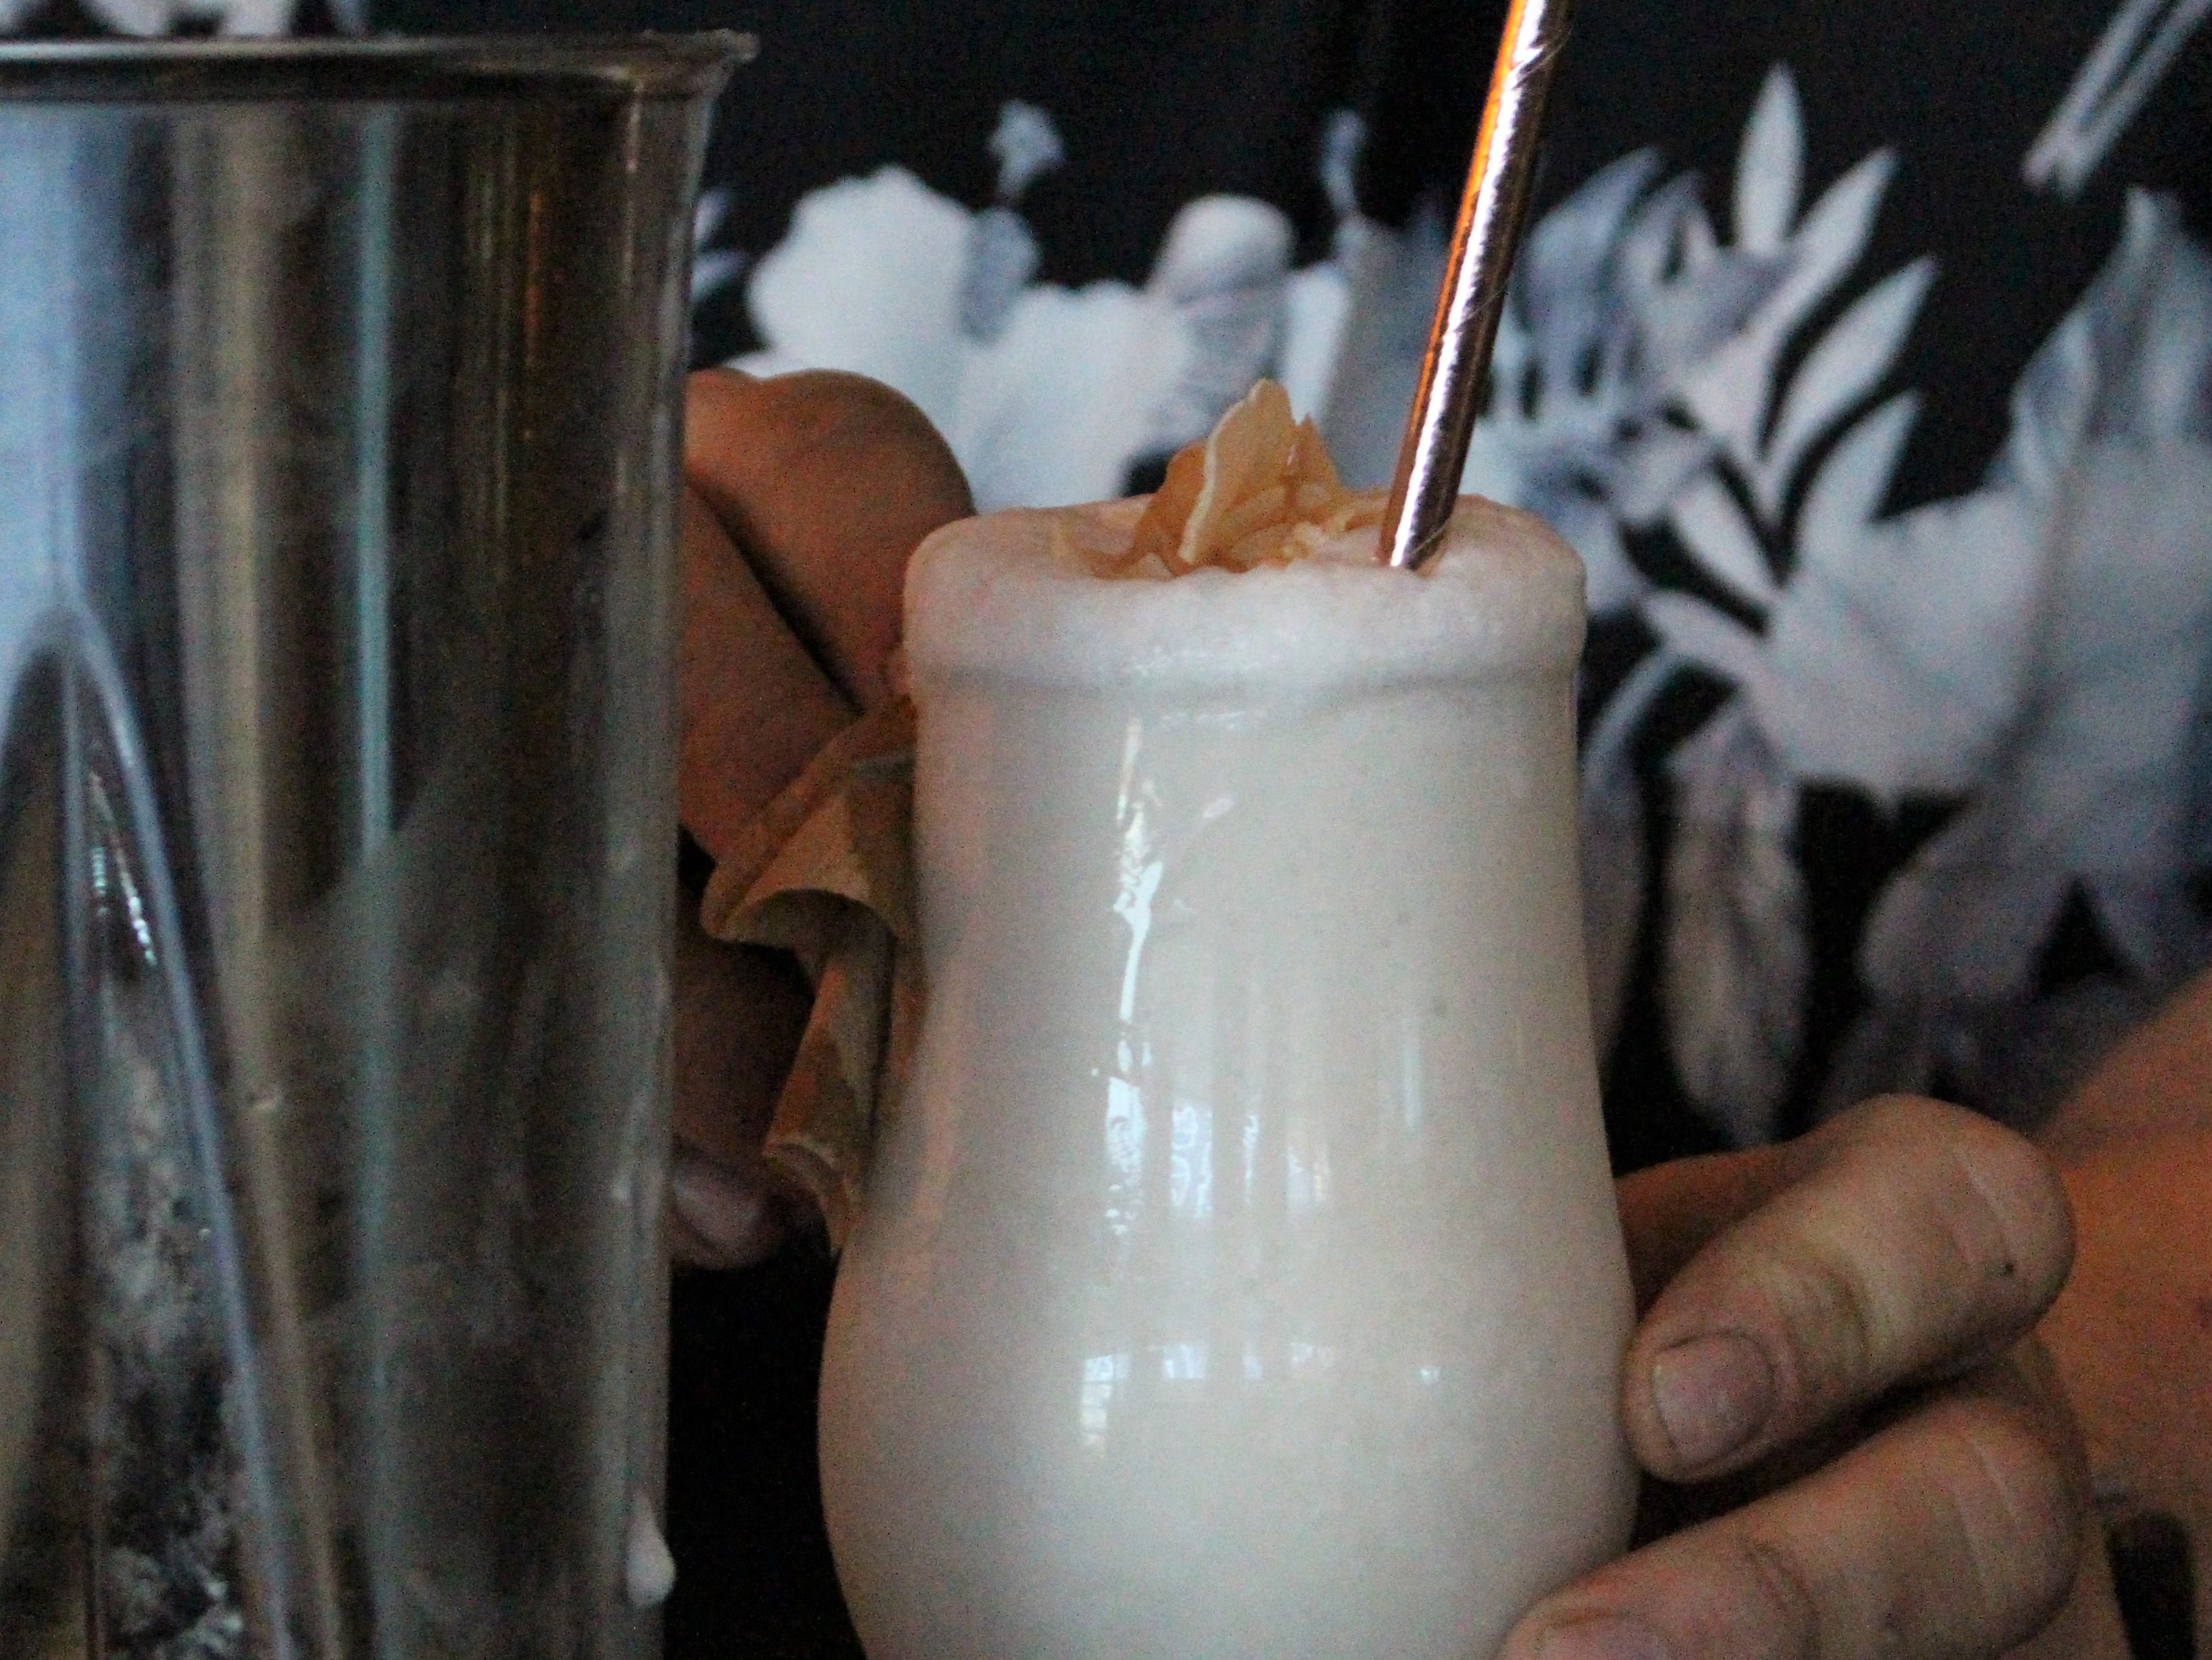 The Coupette Colada at Little Rituals is made with prosecco and housemade coconut sorbet to create a light and slightly more acidic take on the classic cocktail.